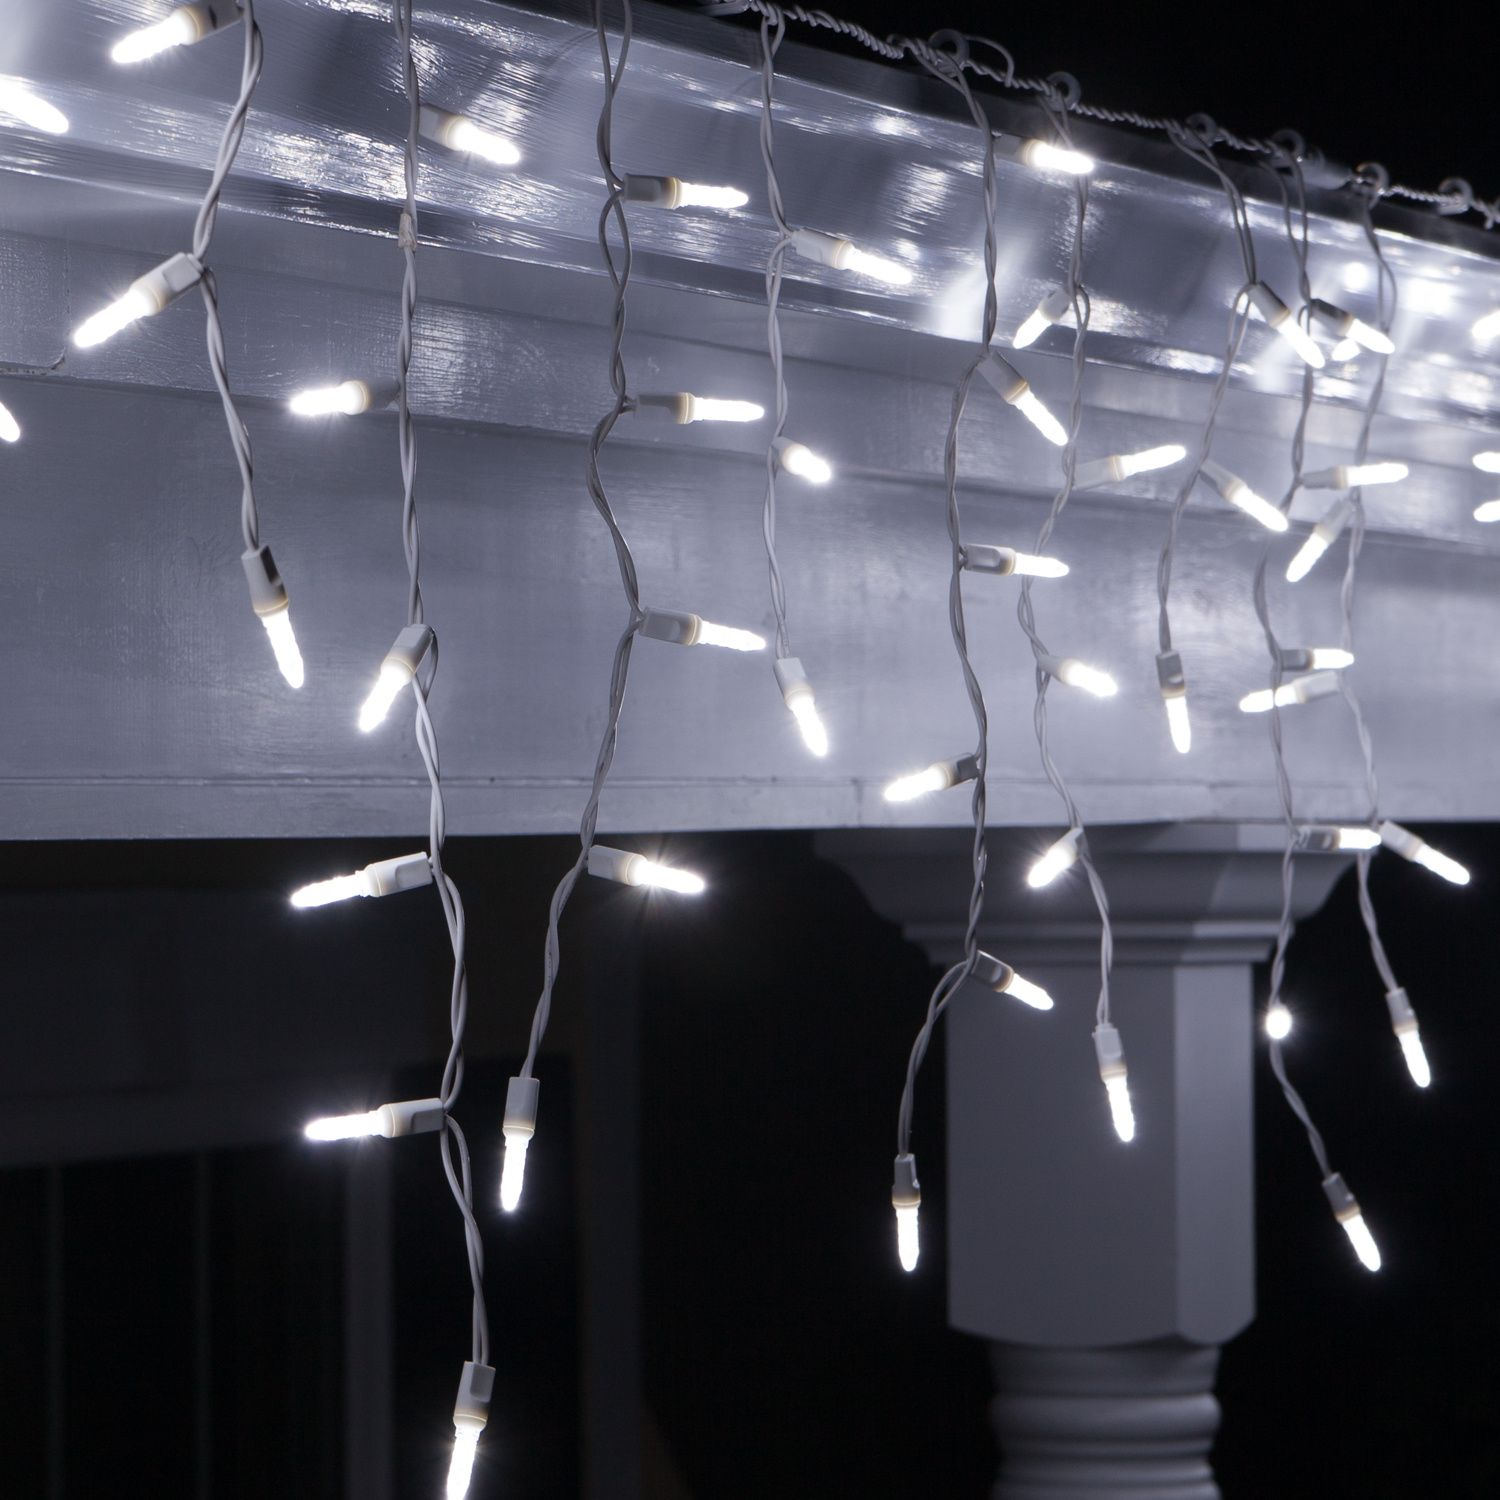 cool white twinkle led energy saving long lasting icicle lights on a l white wire with 3 inch spacing between drops makes hanging christmas lights easy